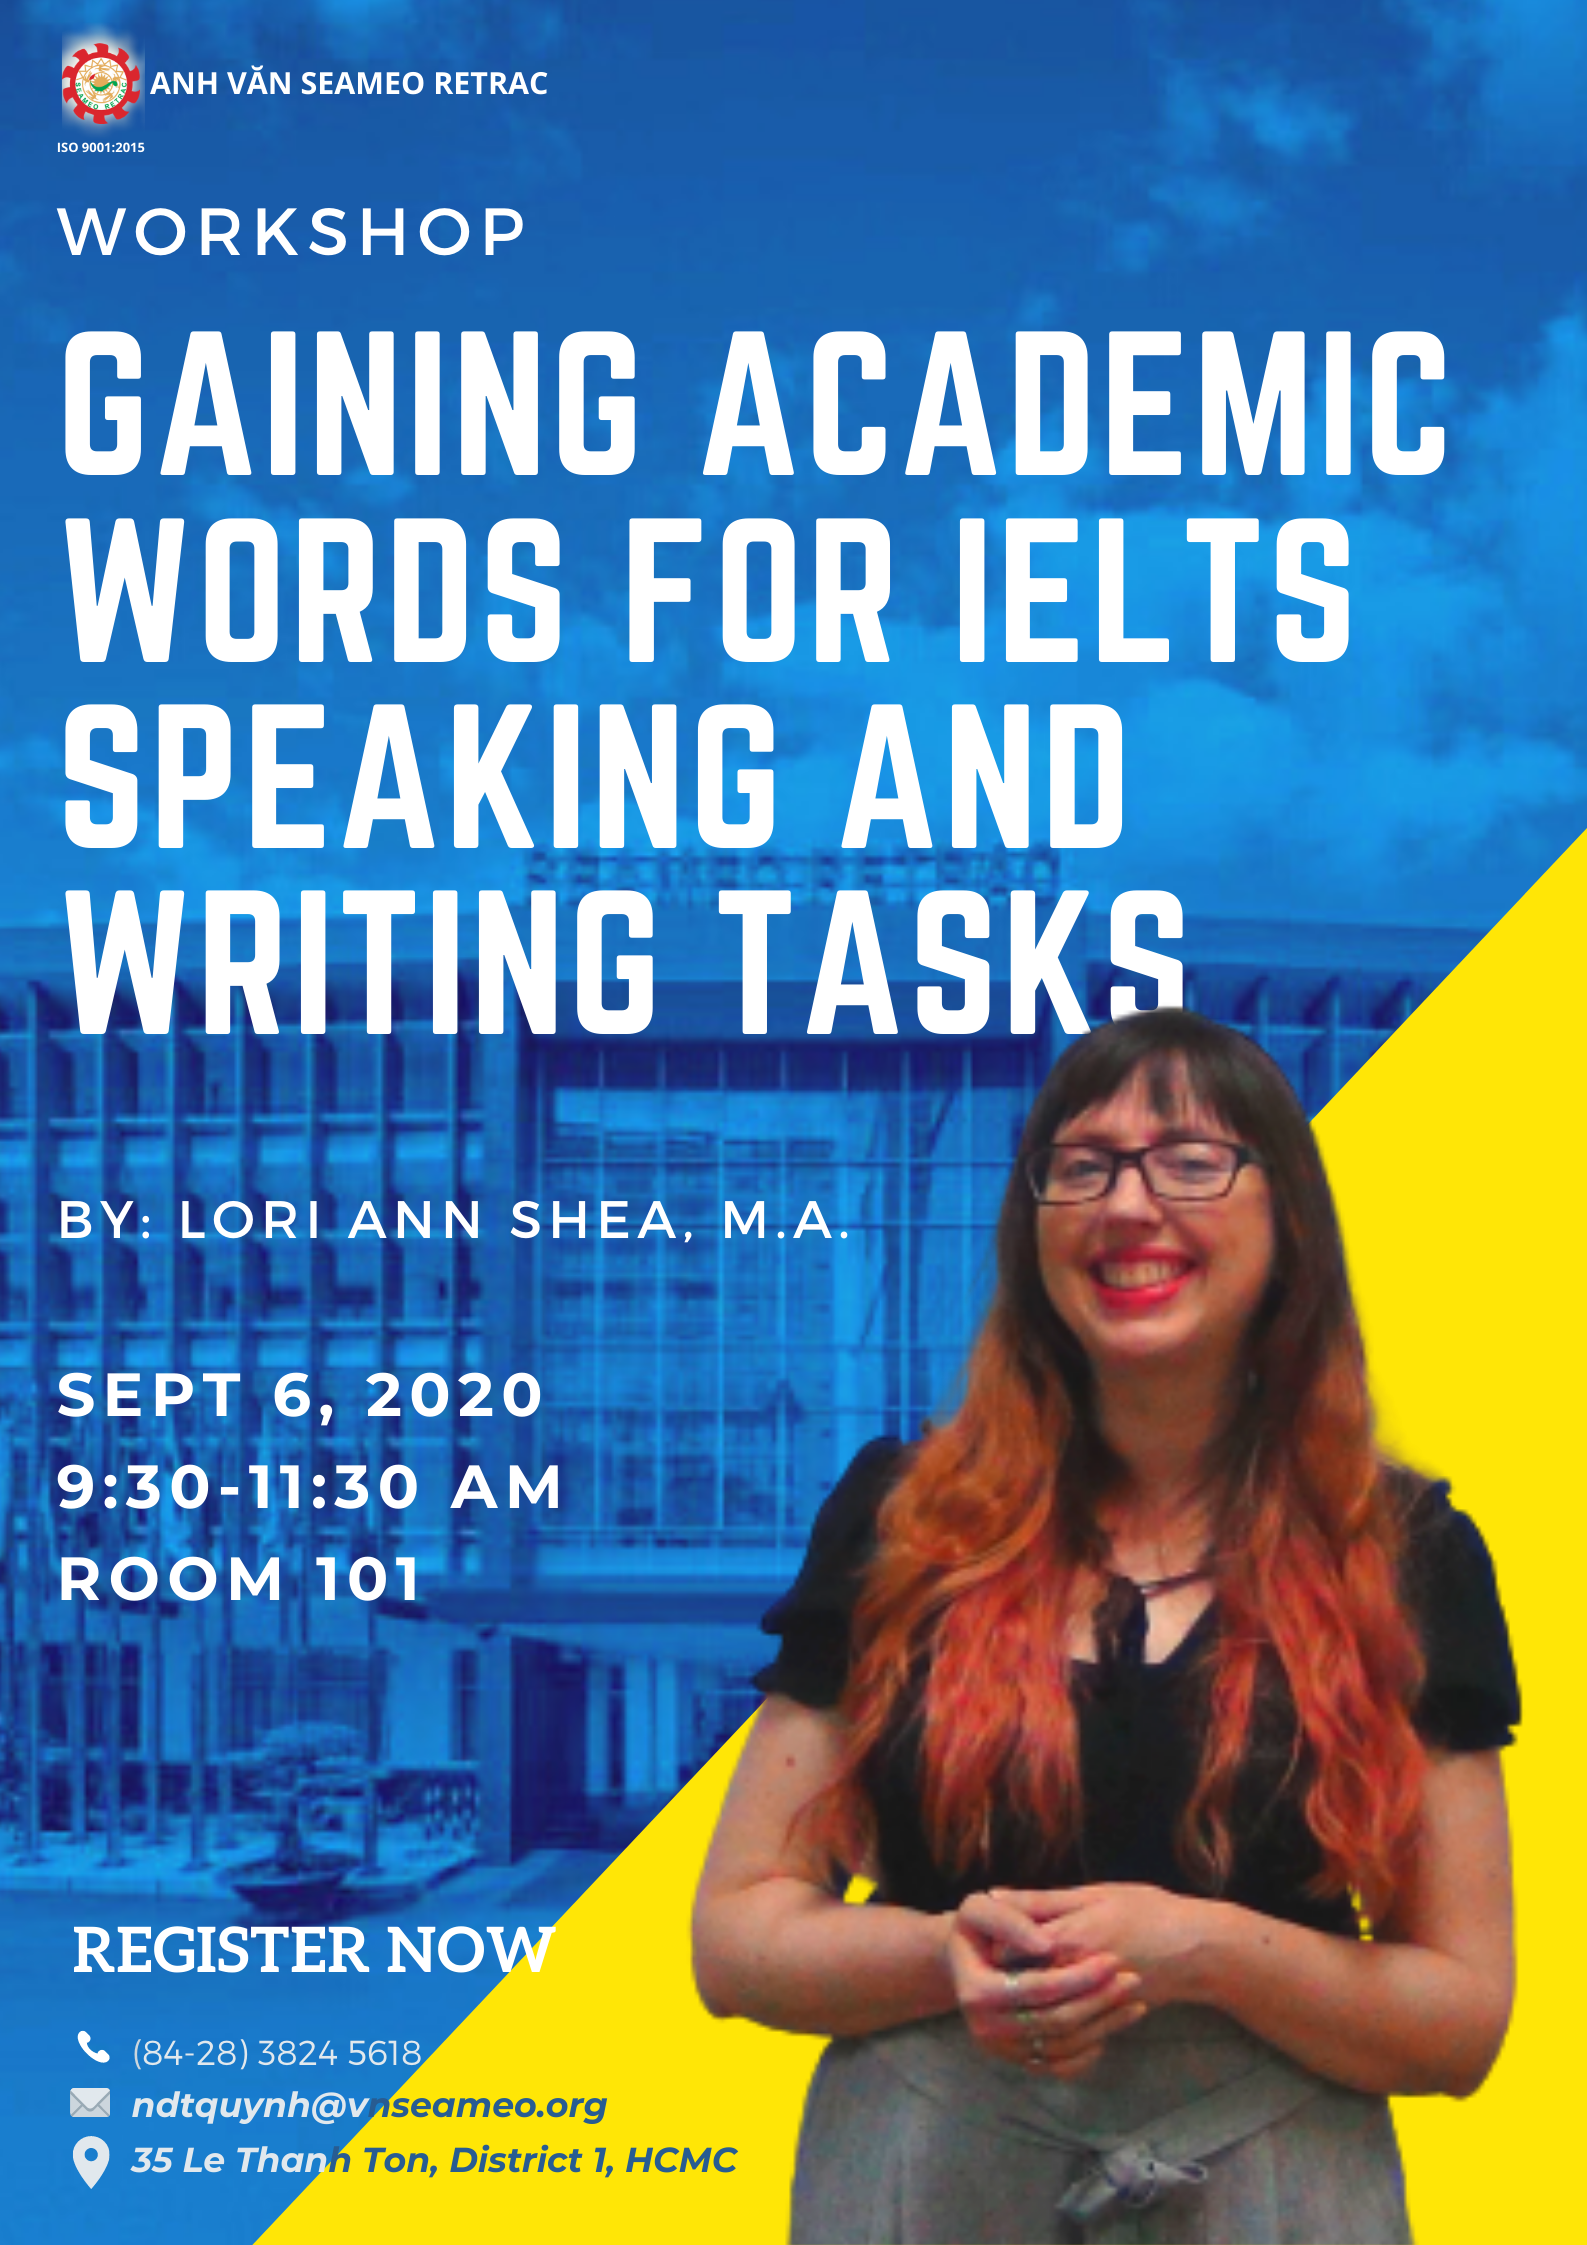 WORKSHOP: GAINING ACADEMIC WORDS FOR IELTS SPEAKING AND WRITING TASKS